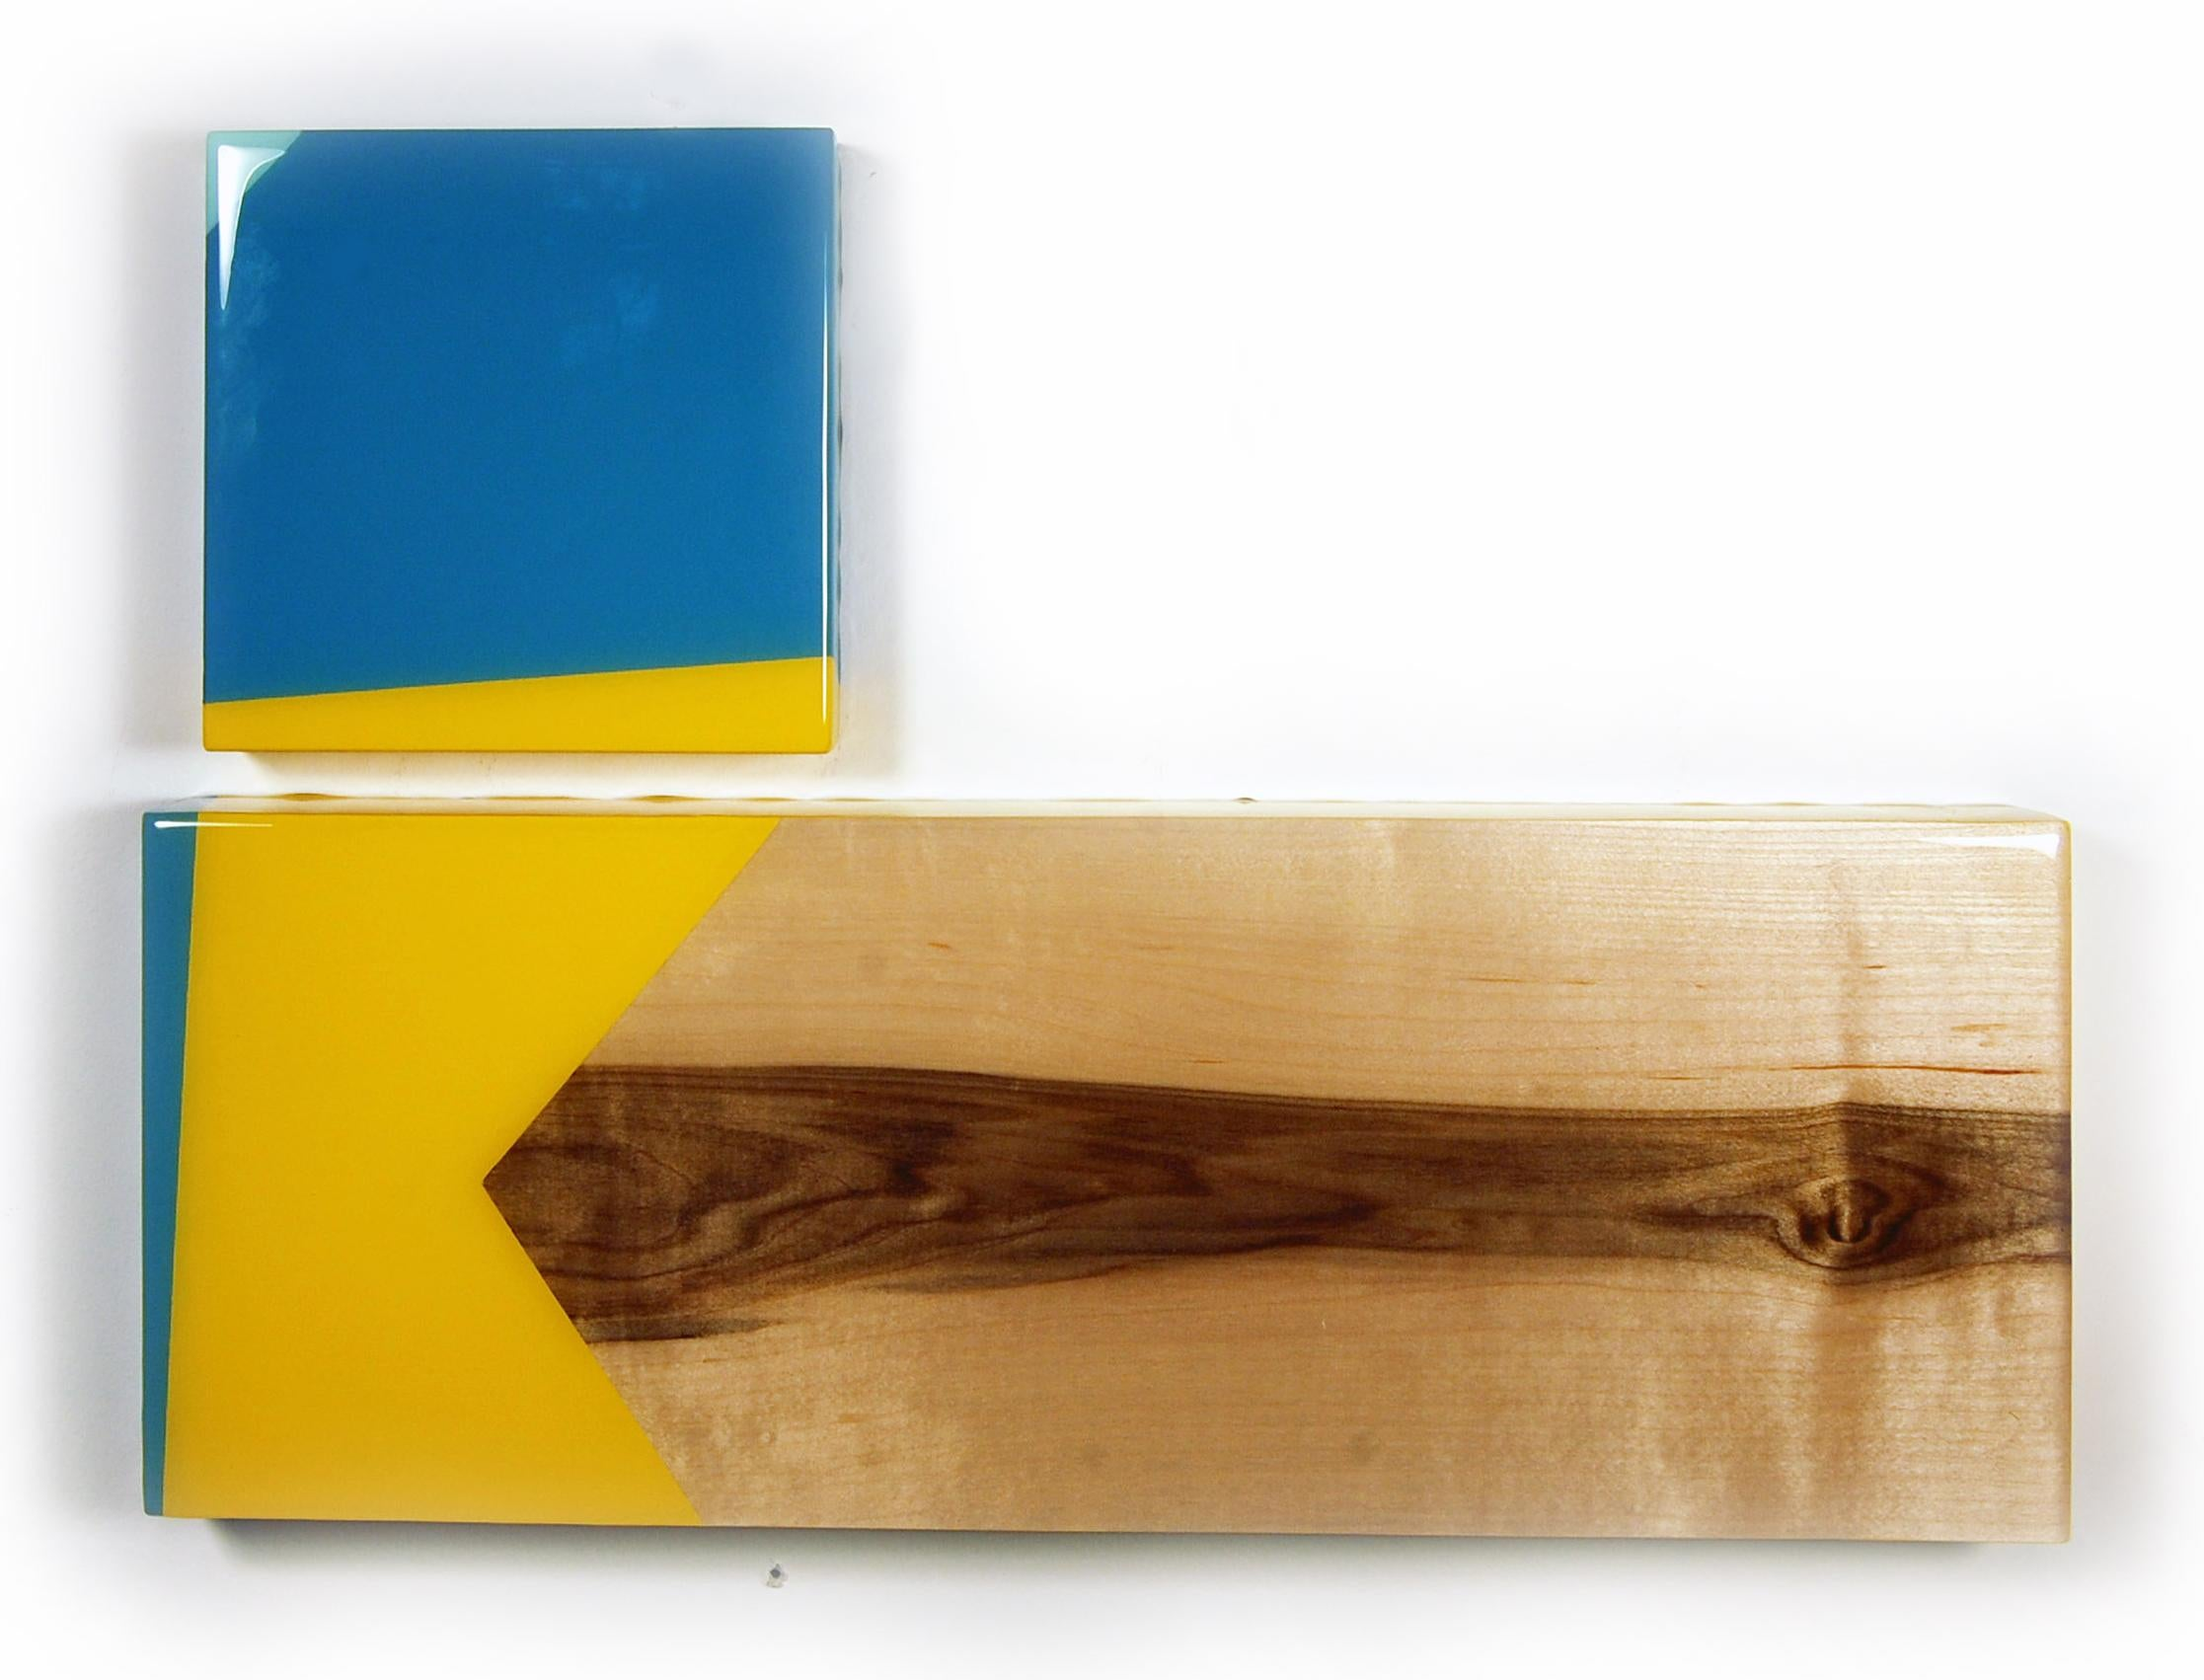 Puzzle 103, David E. Peterson, Contemporary Colorful Wooden Wall Sculpture